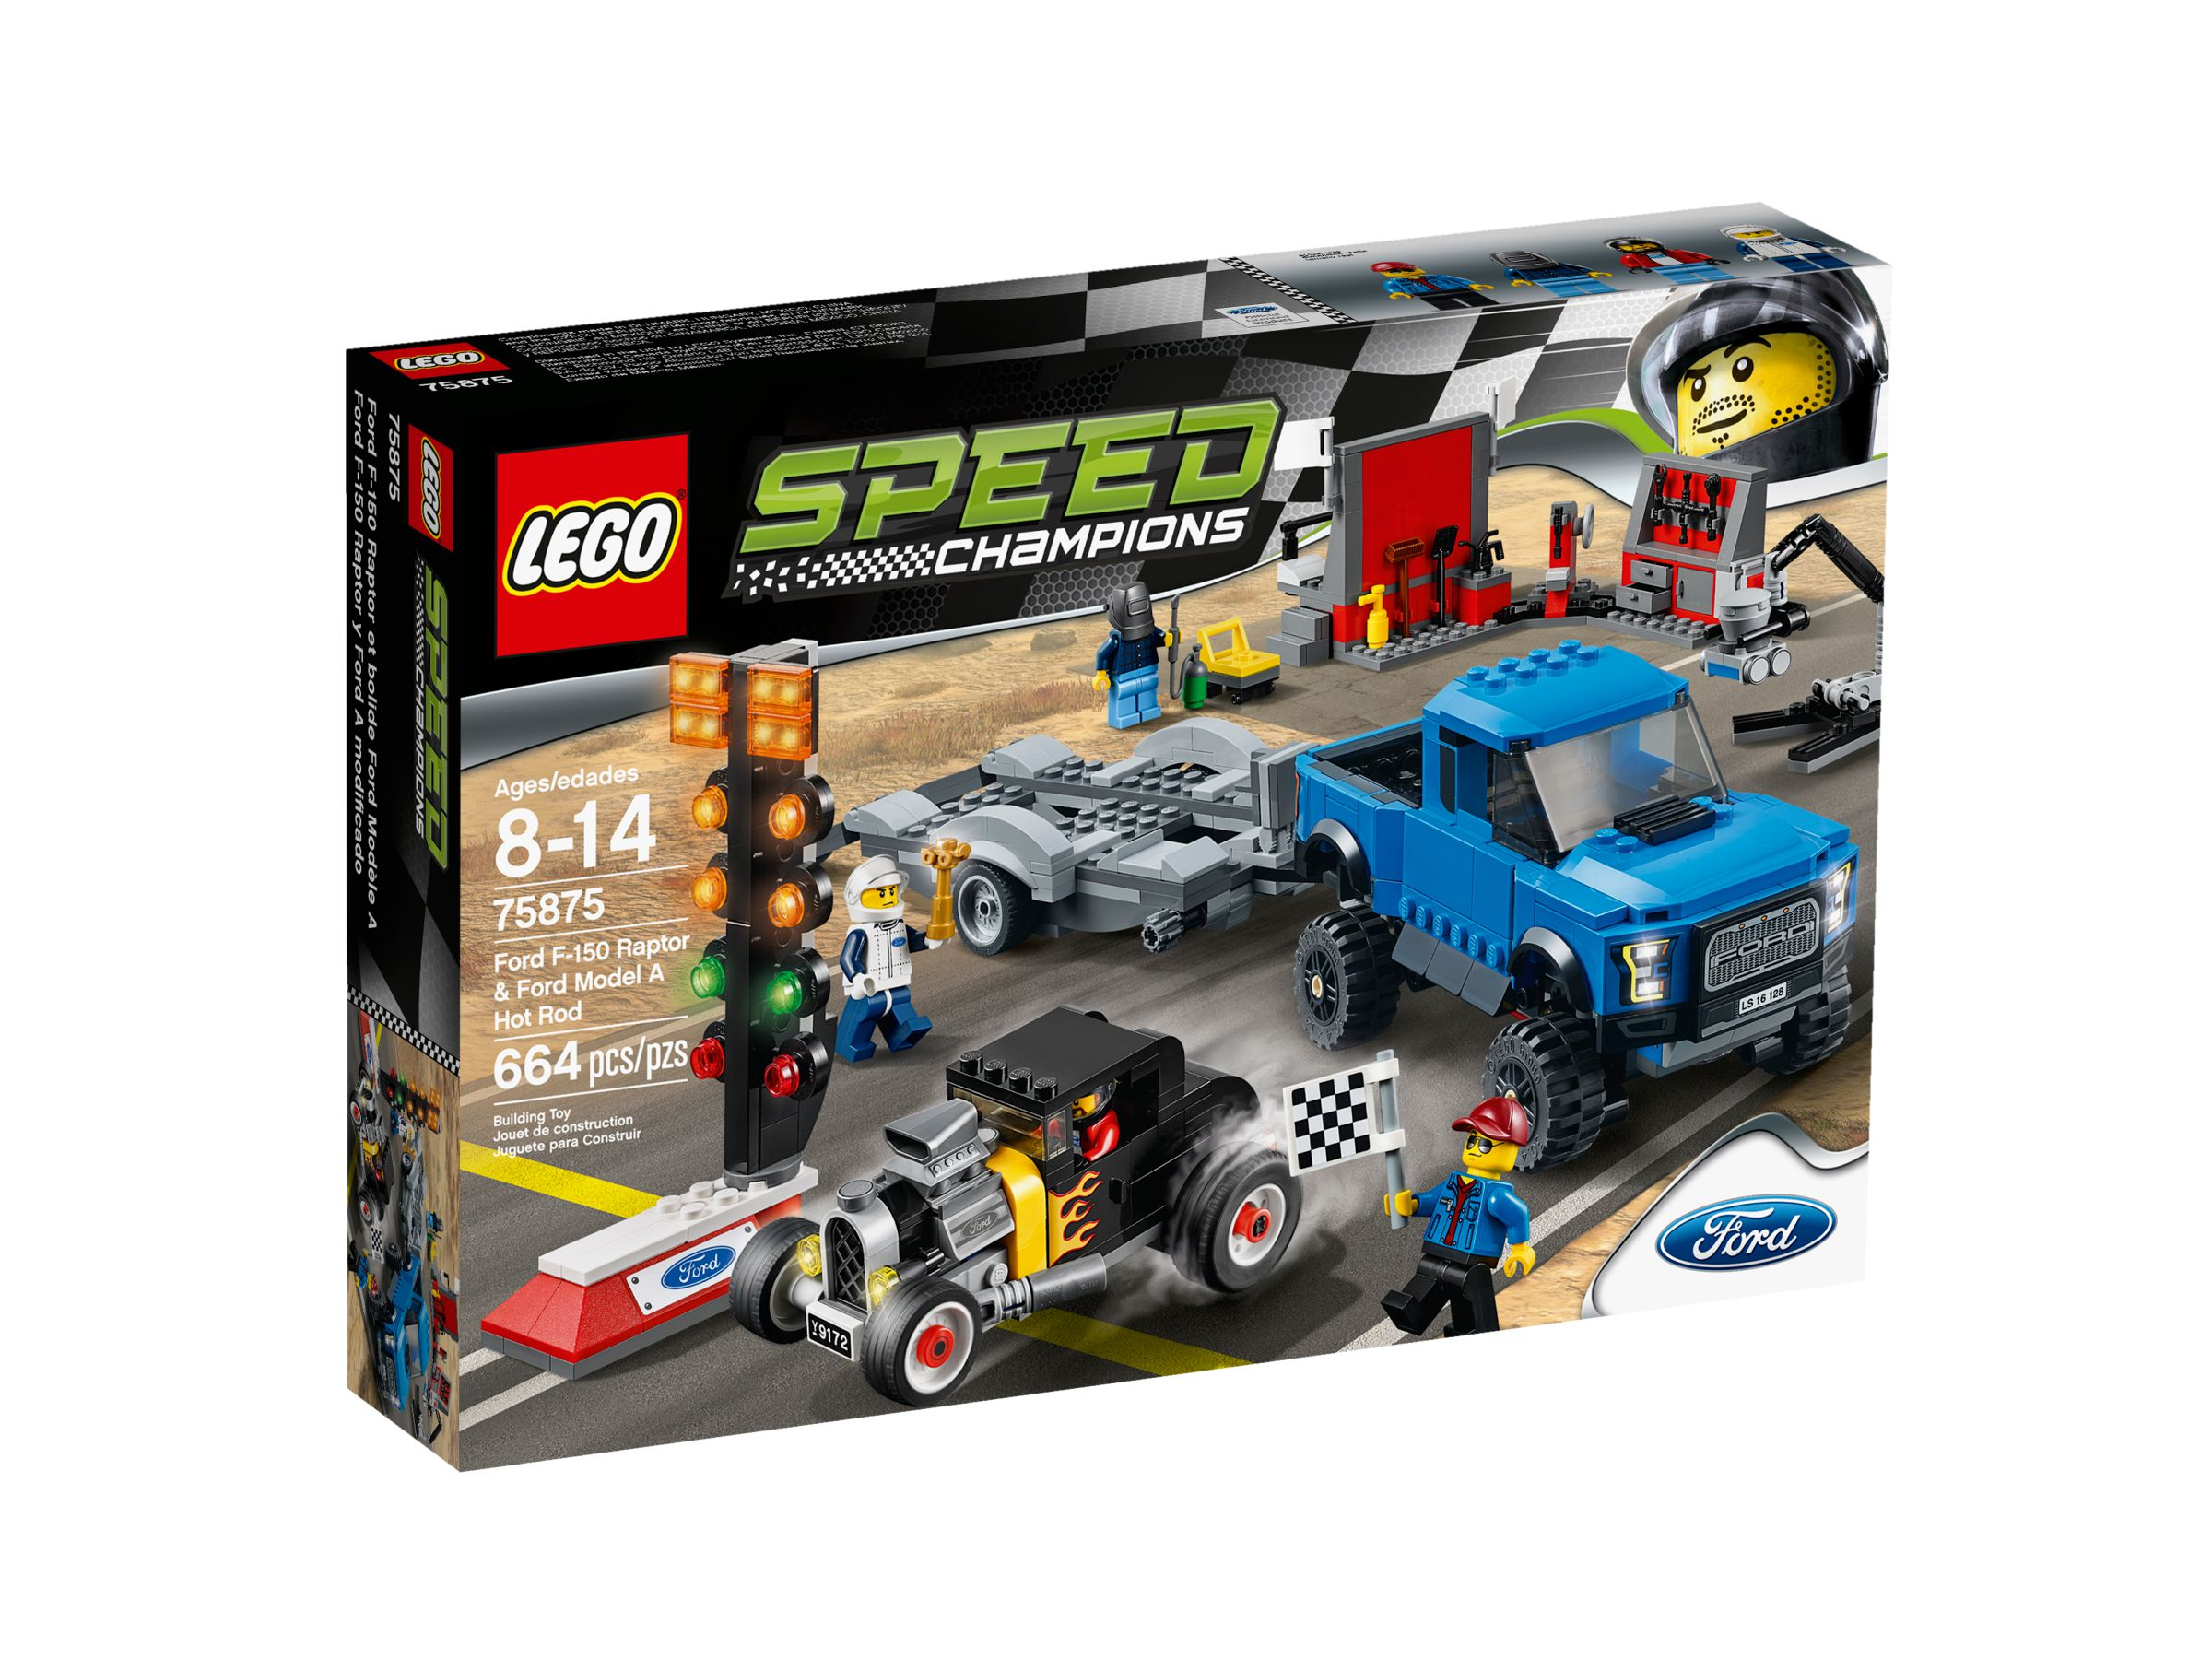 LEGO Speed Champions 75875 Ford F-150 Raptor & Ford Model A Hot Rod LEGO_75875_alt1.jpg